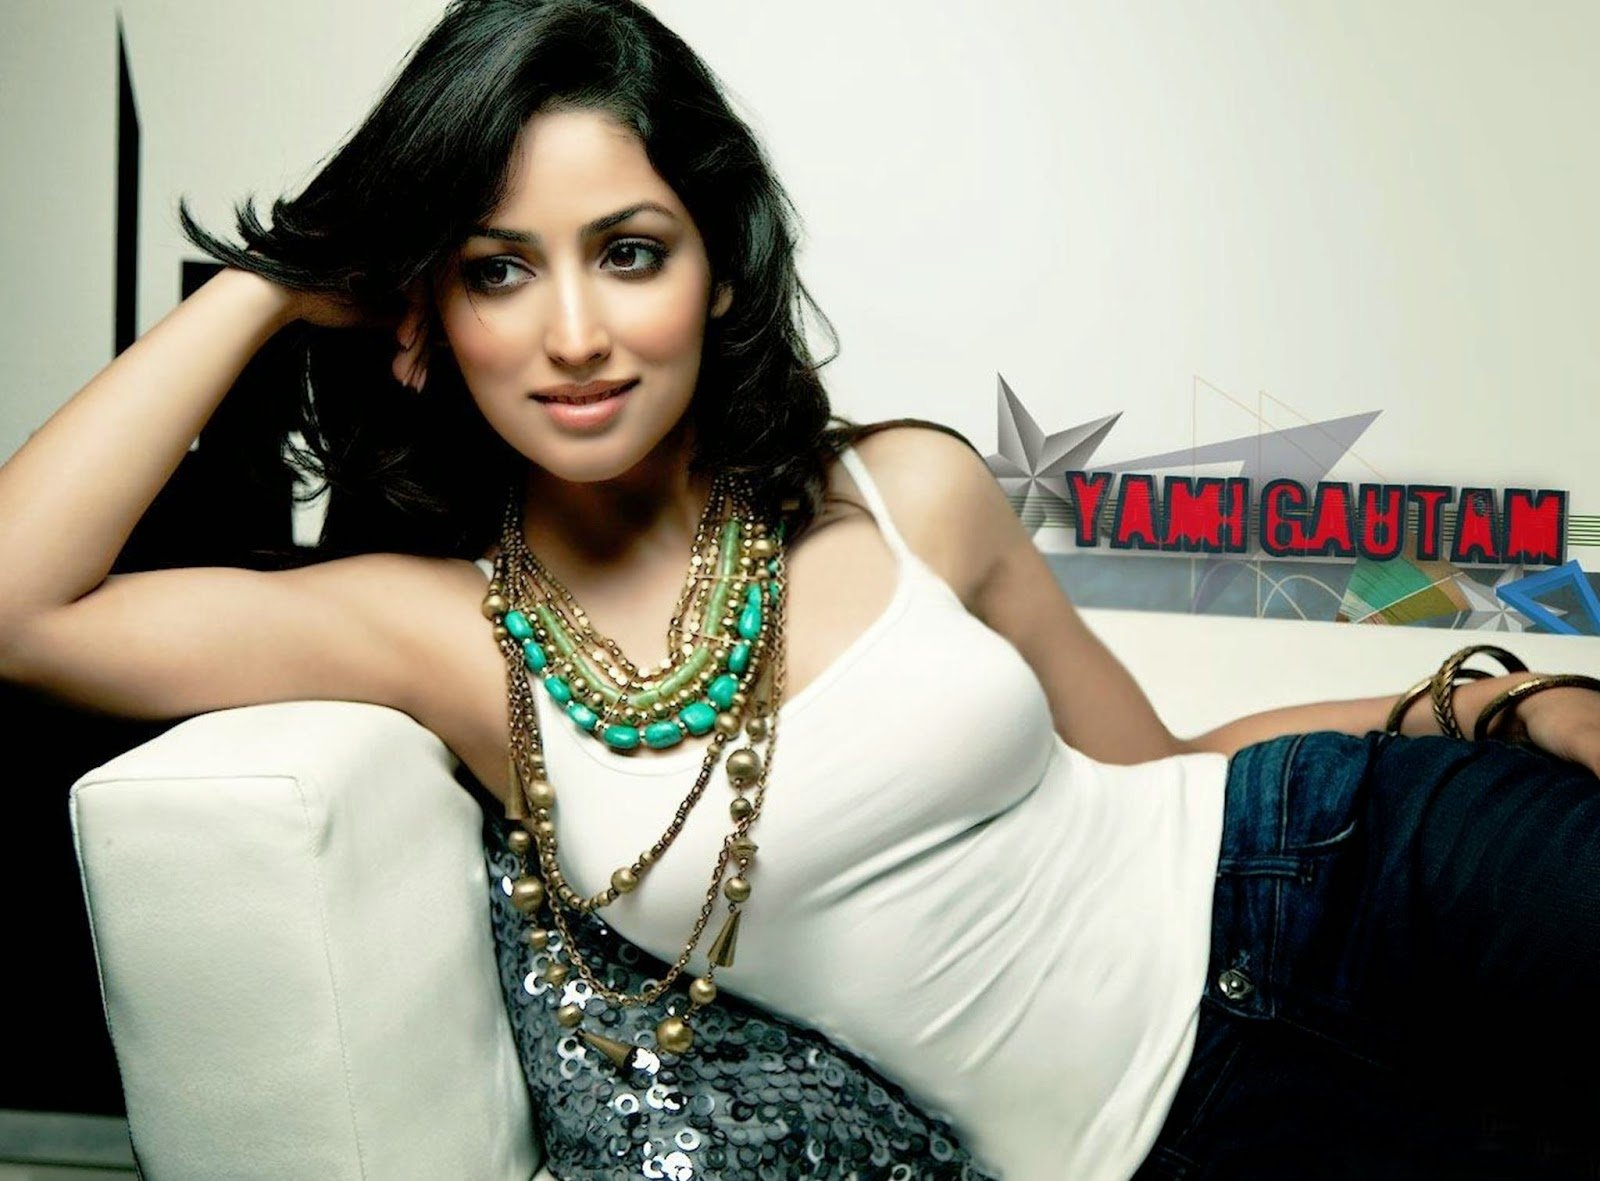 Bollywood Actress Yami Gautam Photoshoot: New Bollywood Actress Wallpaper 2015